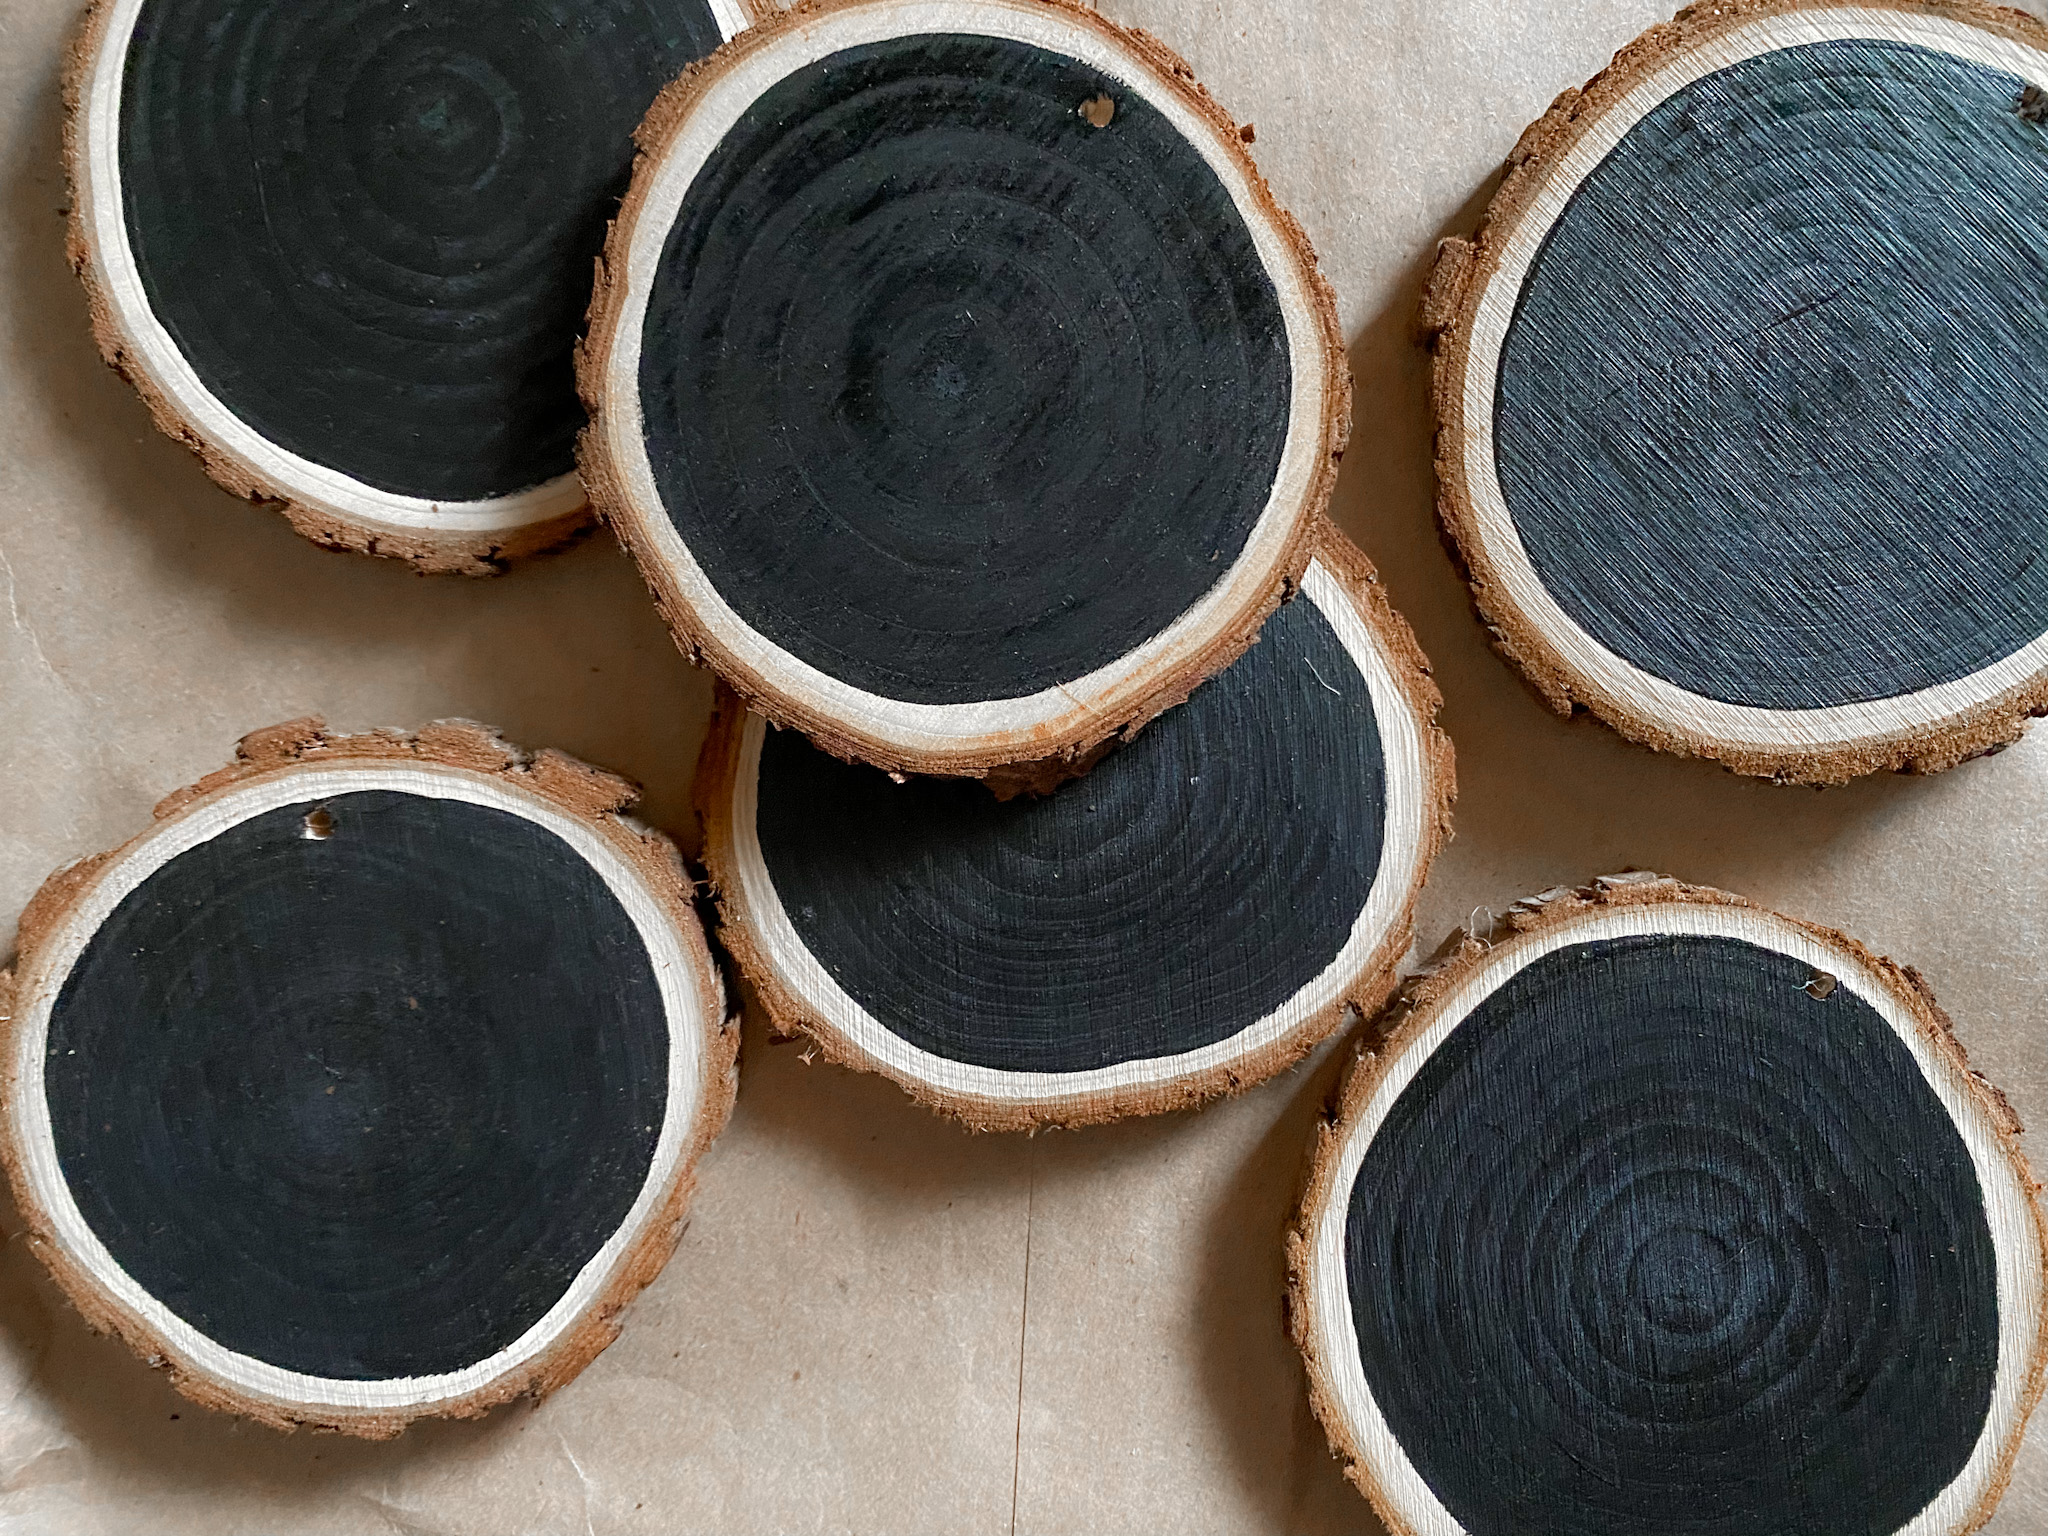 Wood slices with the black chalkboard paint on them